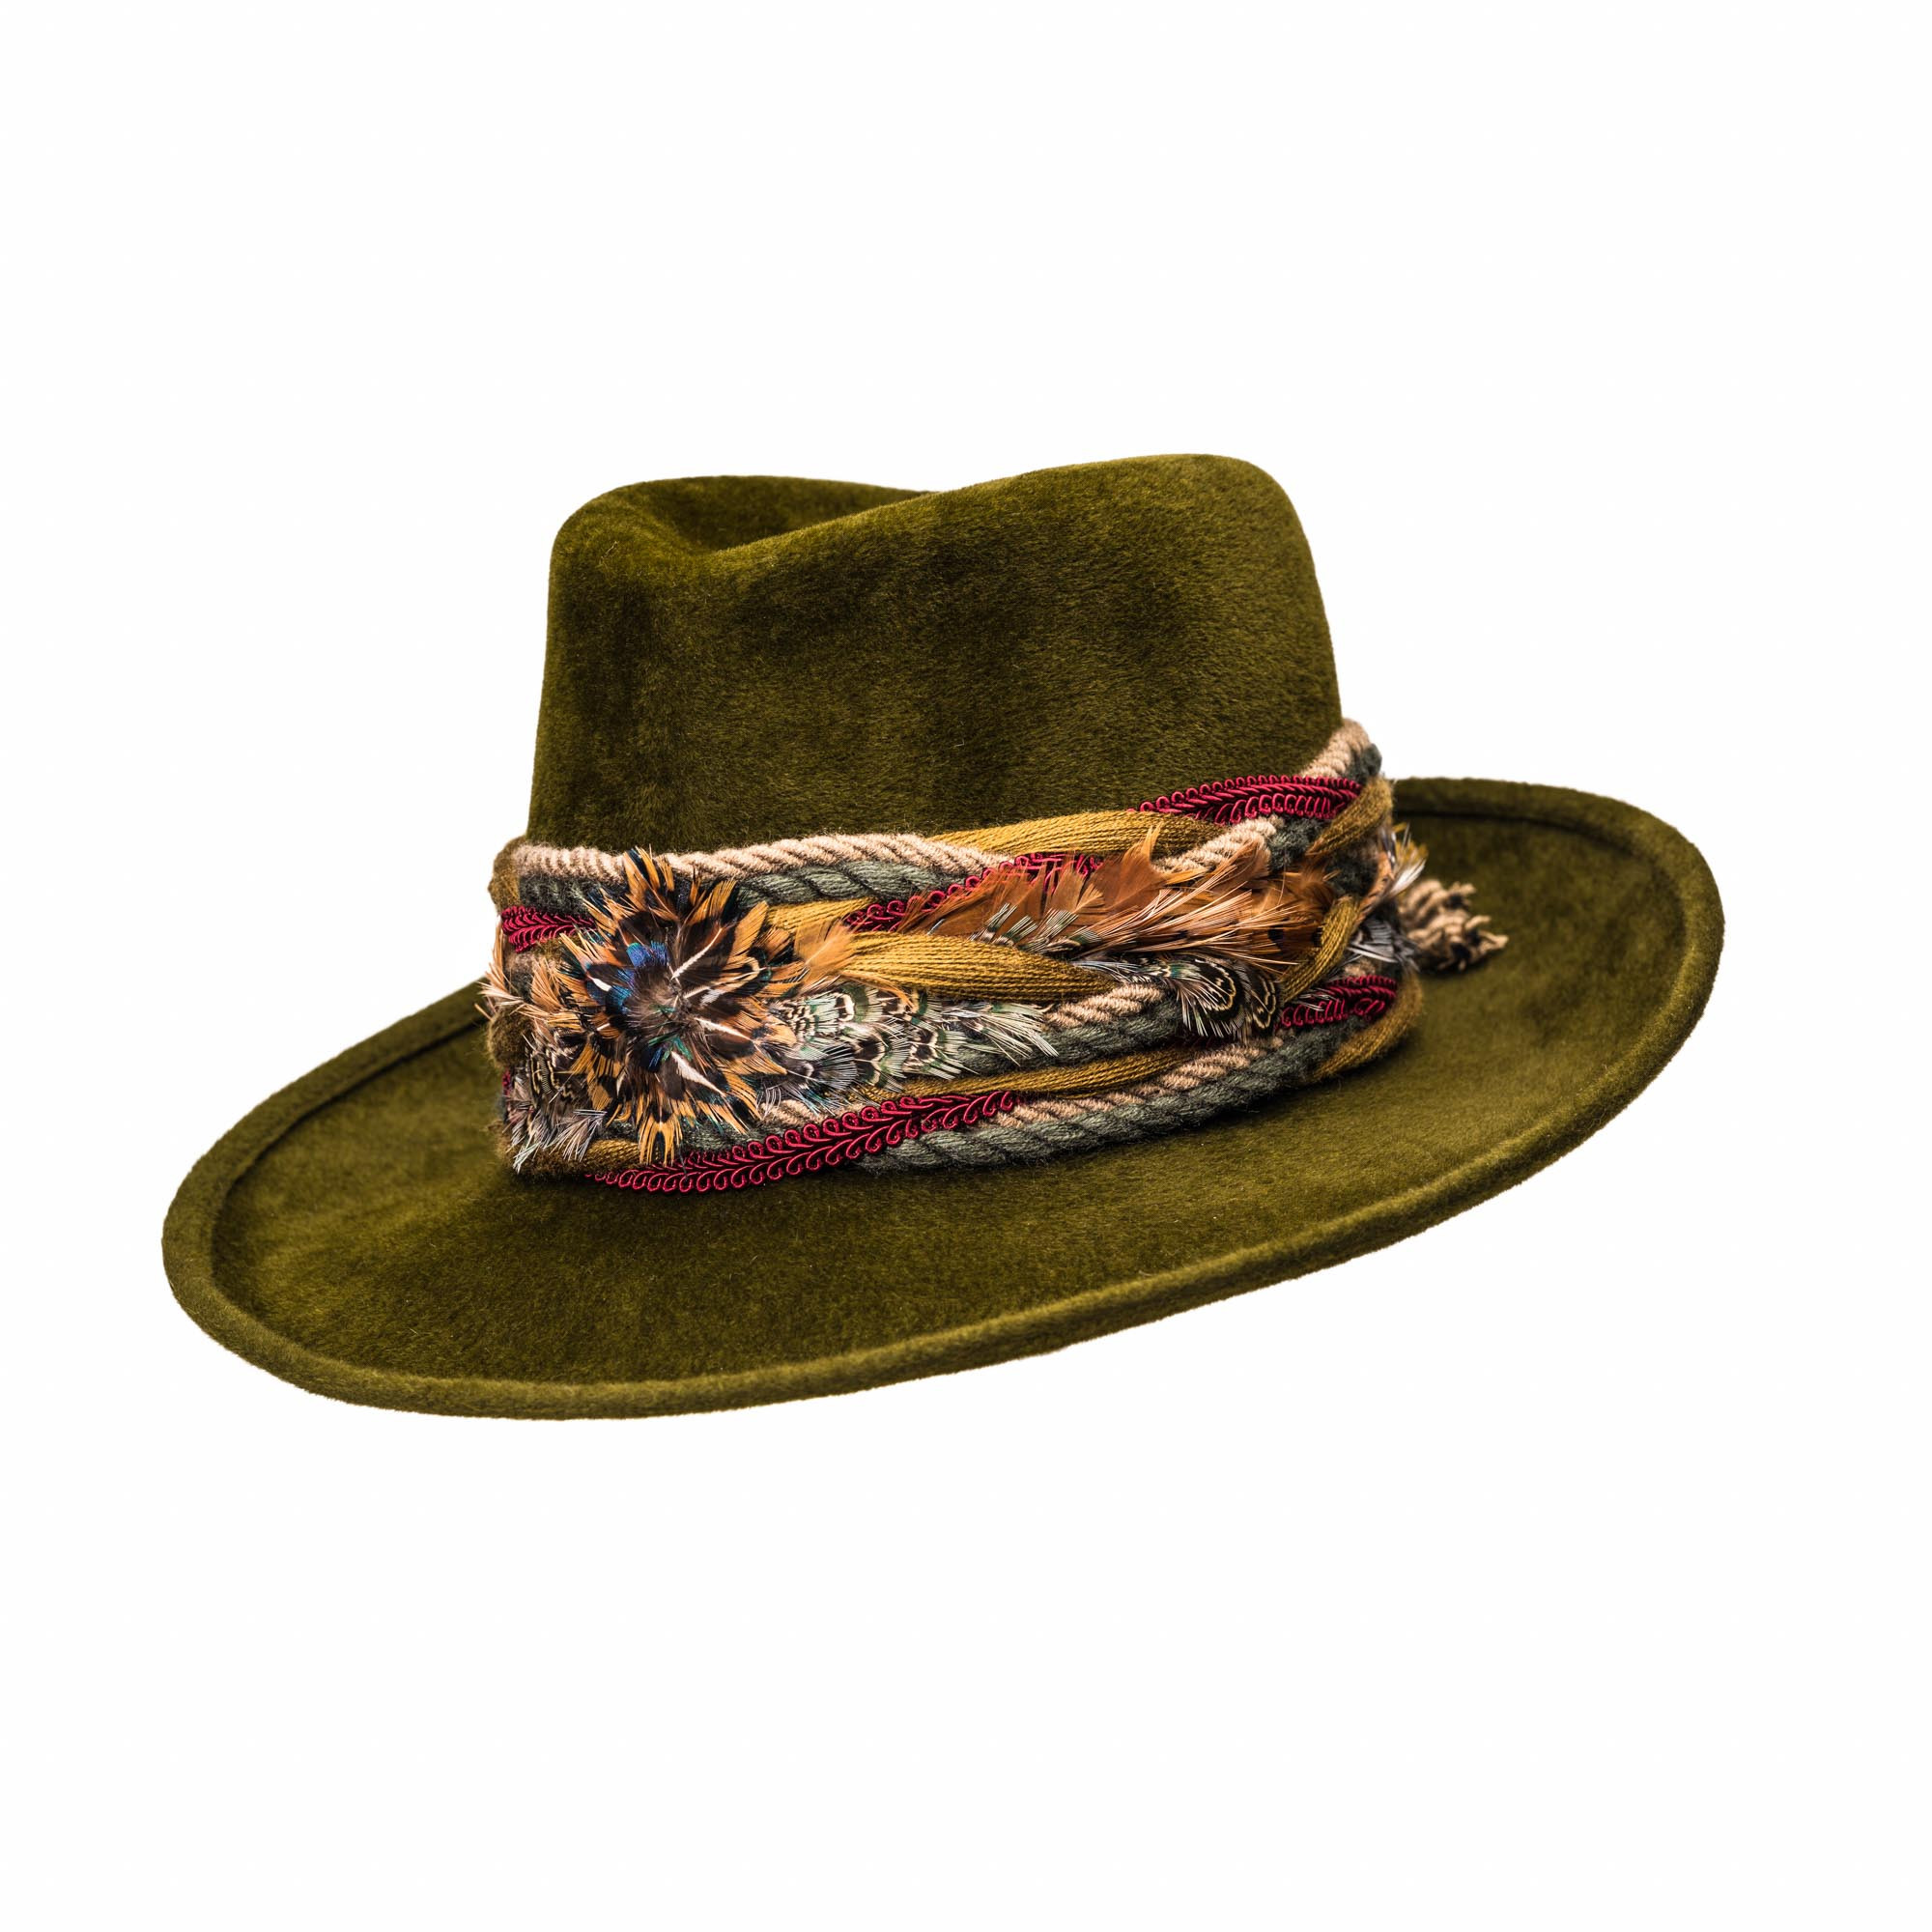 6147b3ad0e2 Hunting Hats Canada Hat Hd Image Ukjugs. Big Bill ...